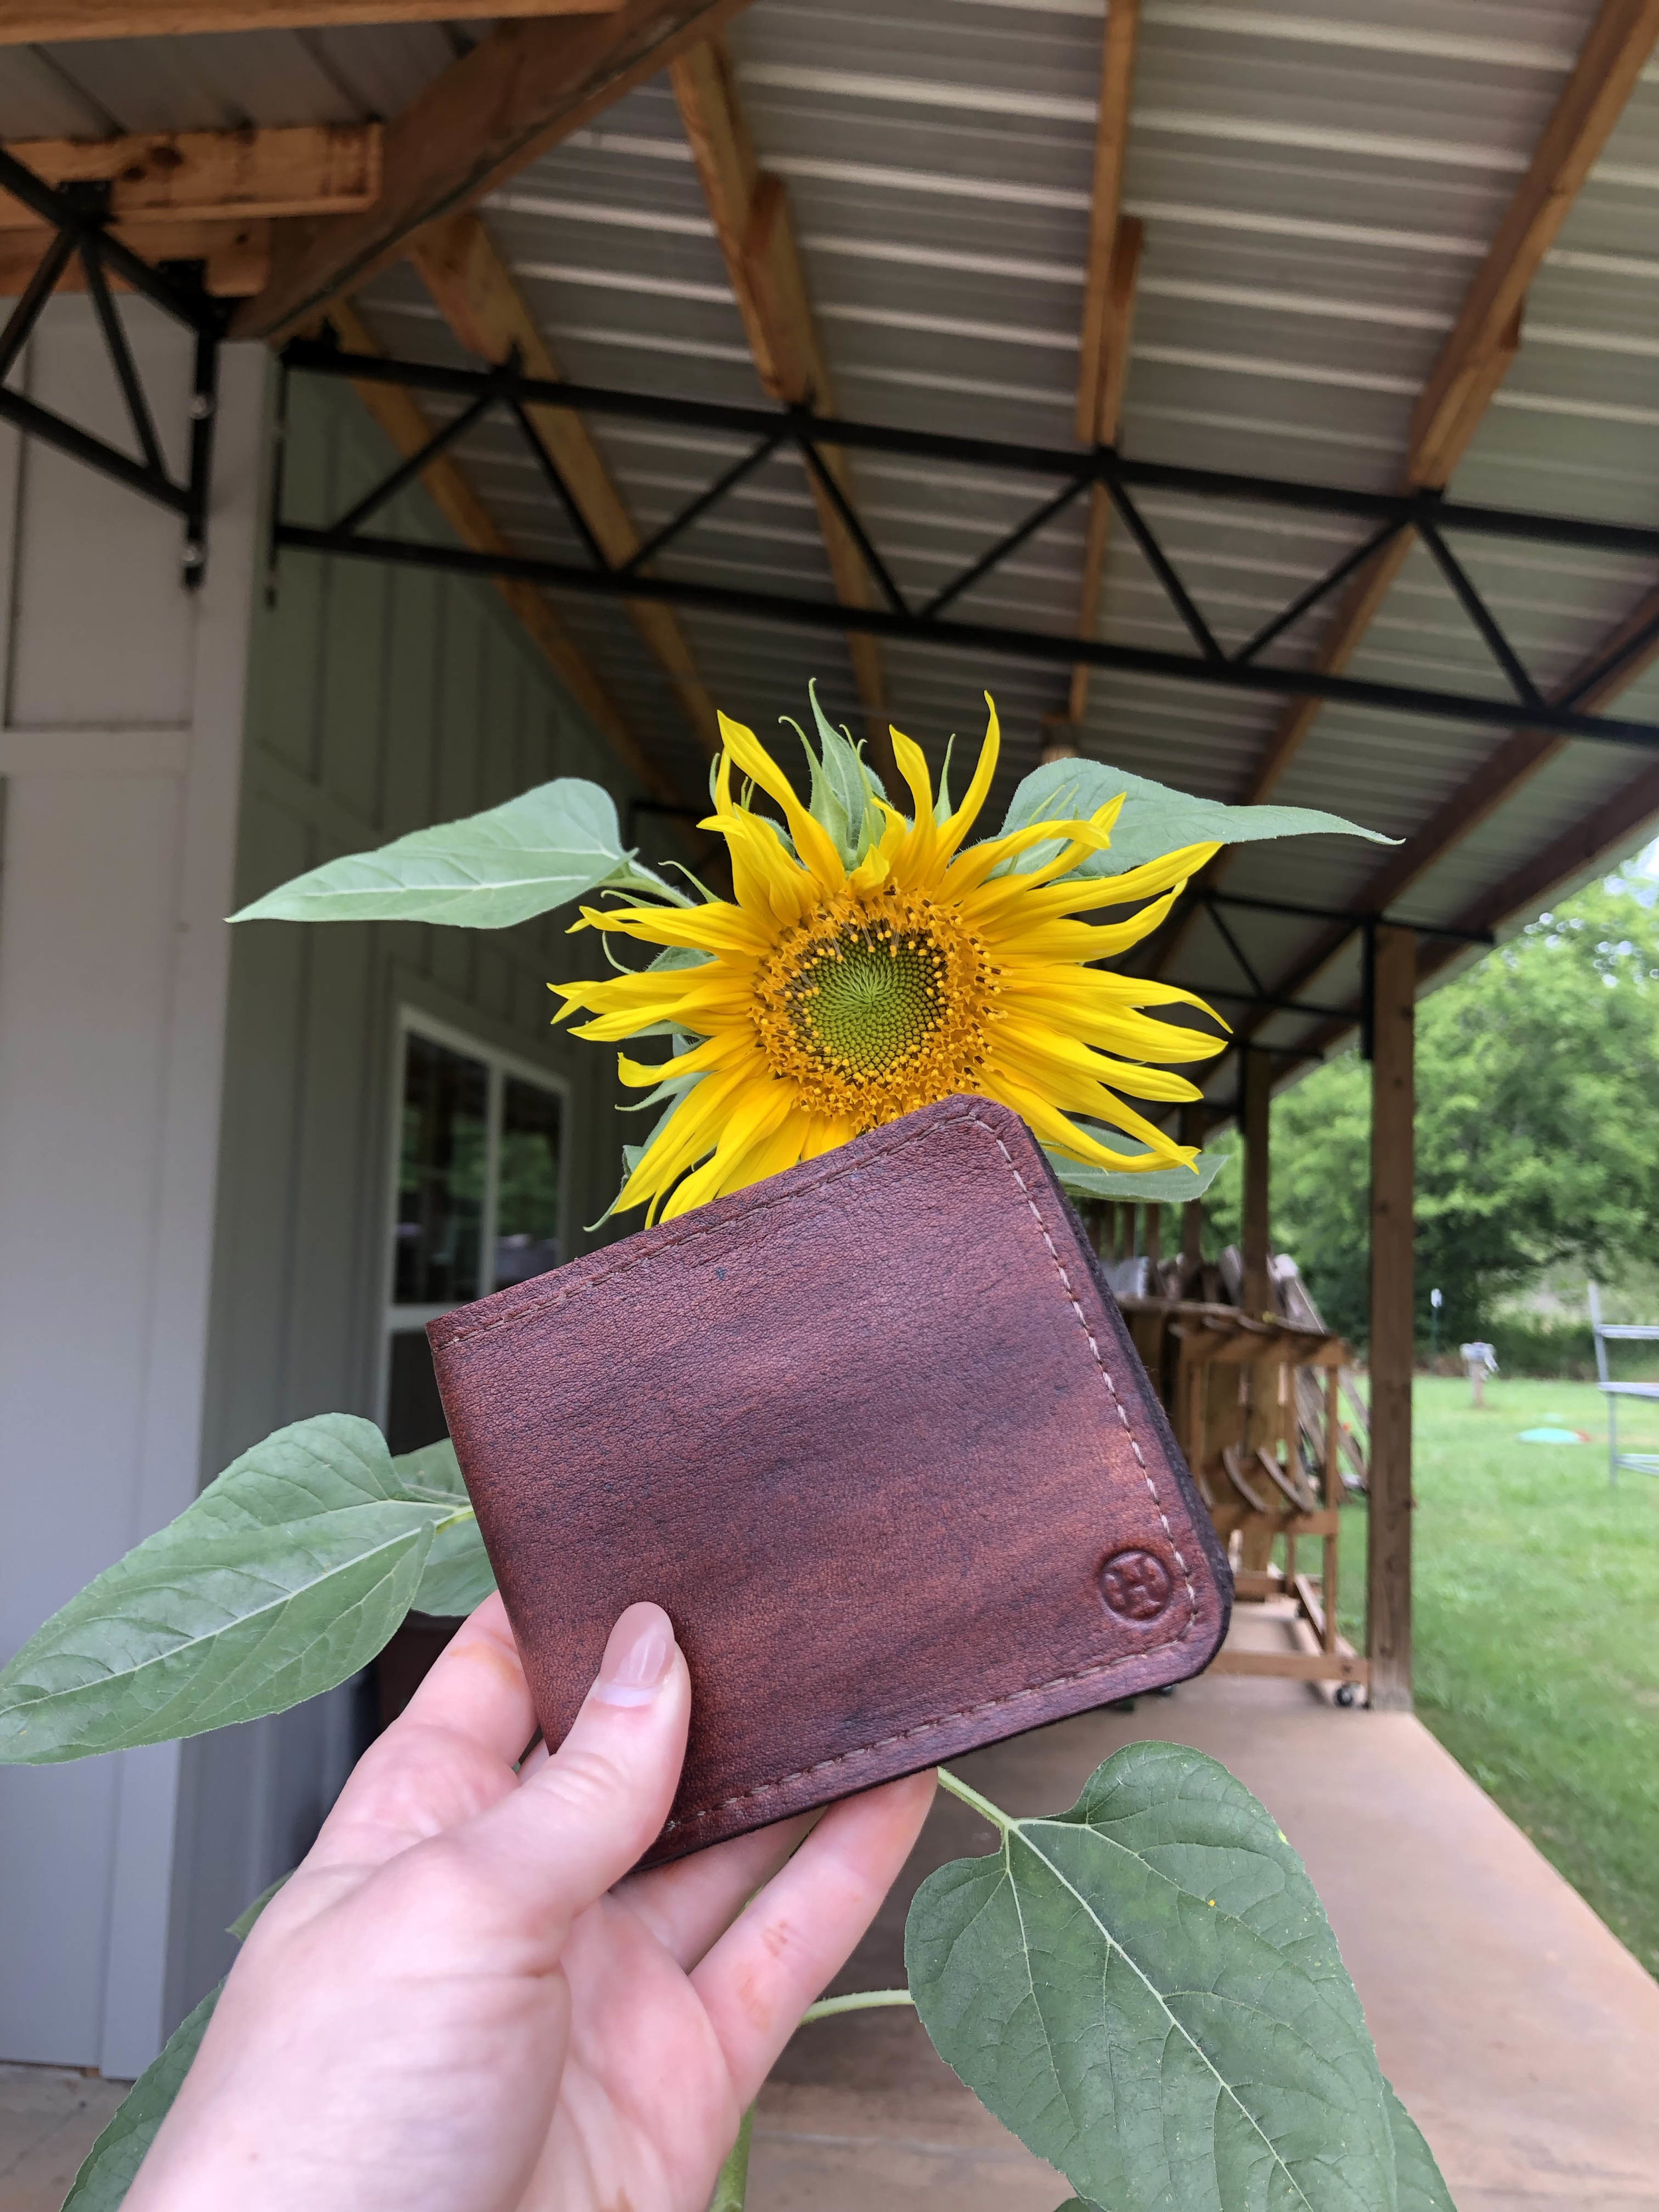 Billfold wallet I designed, flat patterned, prototyped, and made.